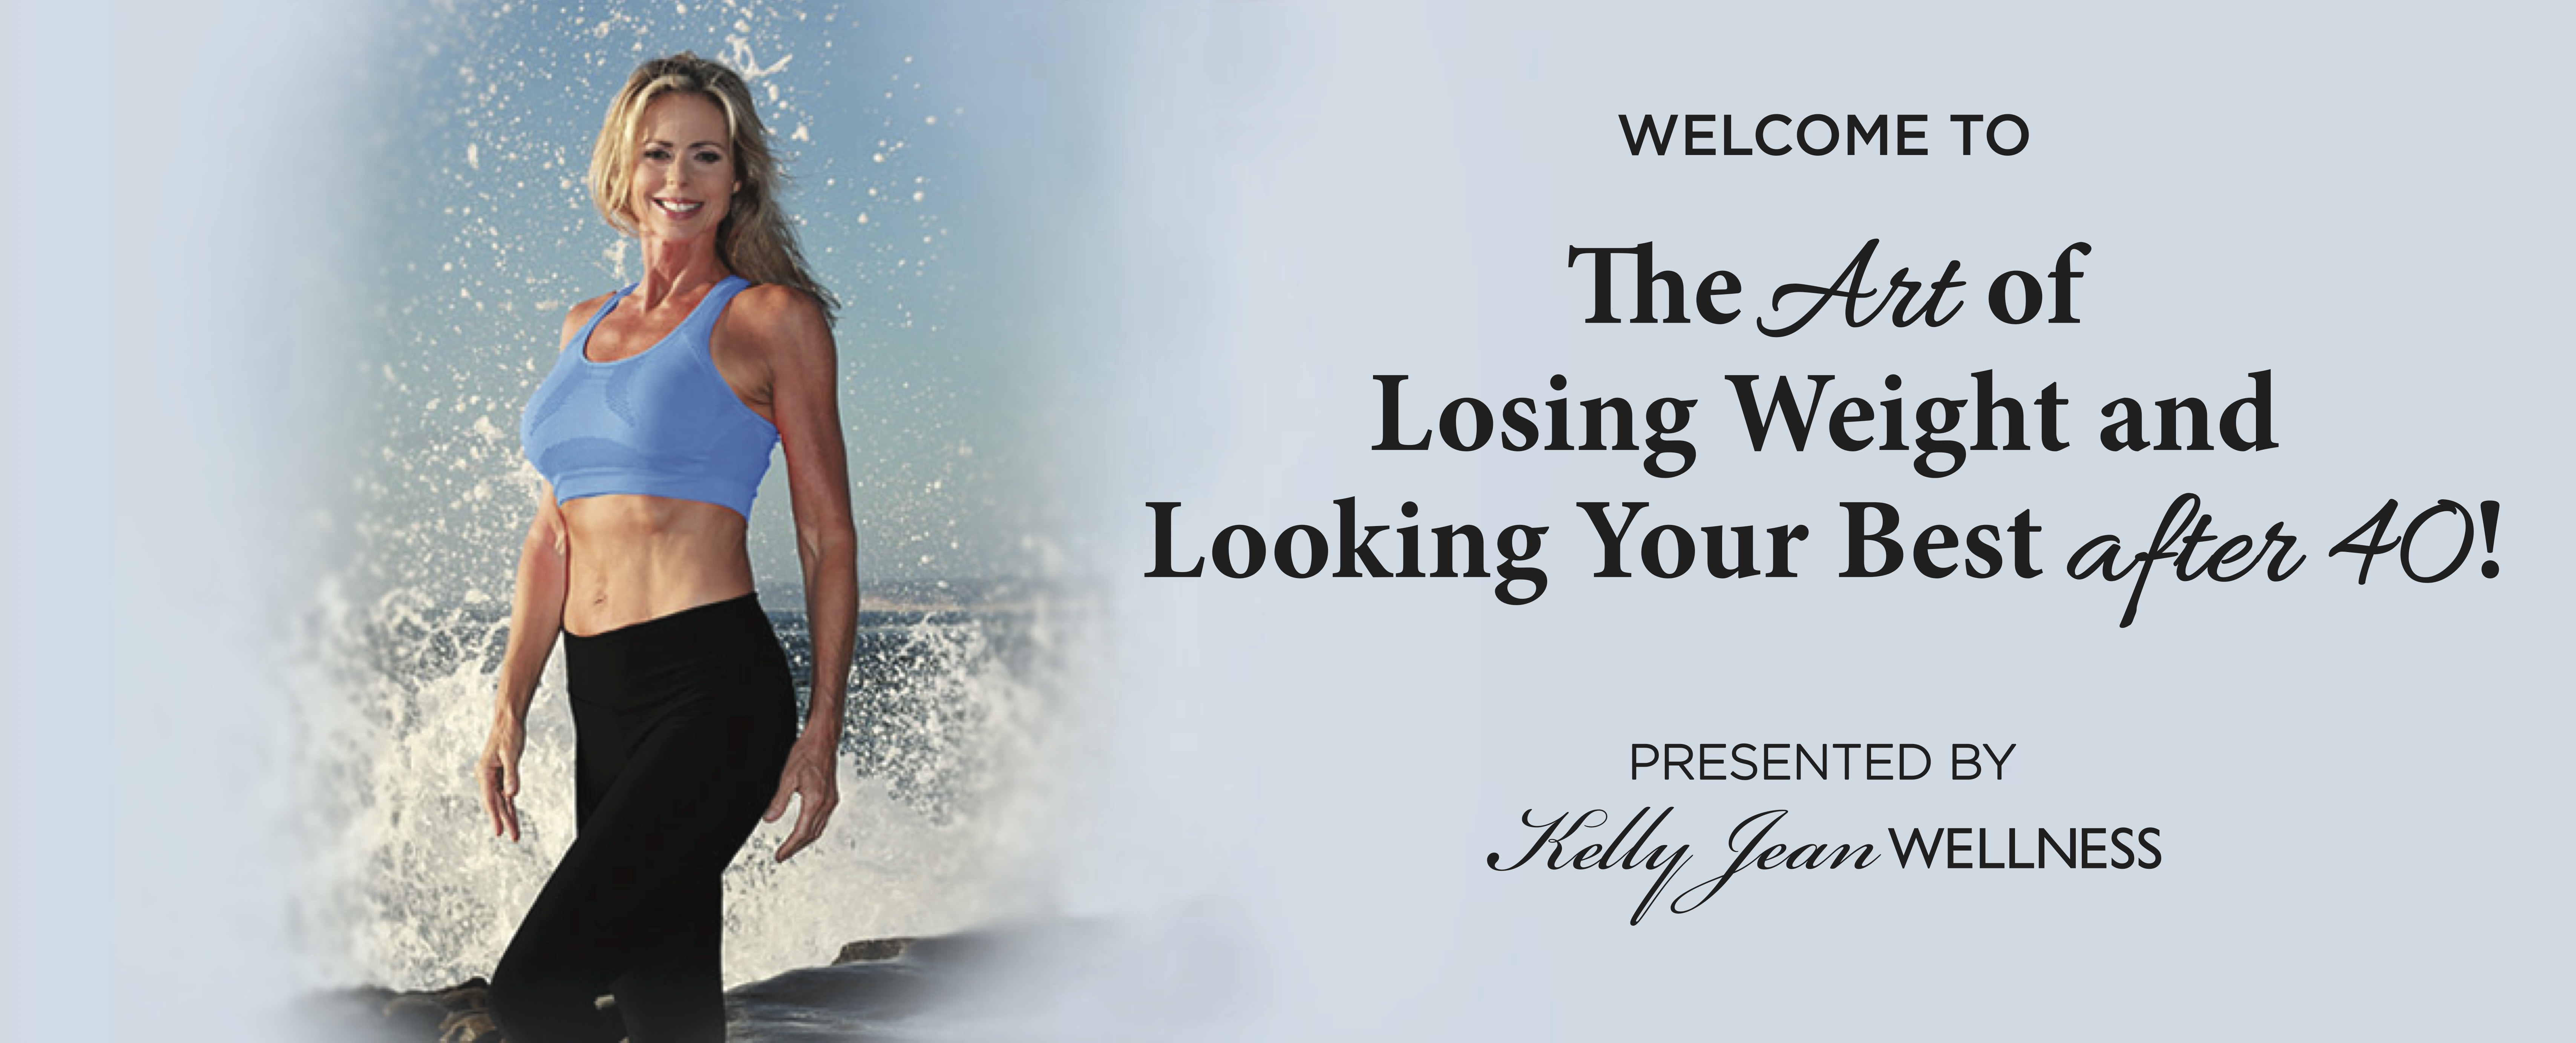 The Art of Losing Weight and Looking Your Best after 40